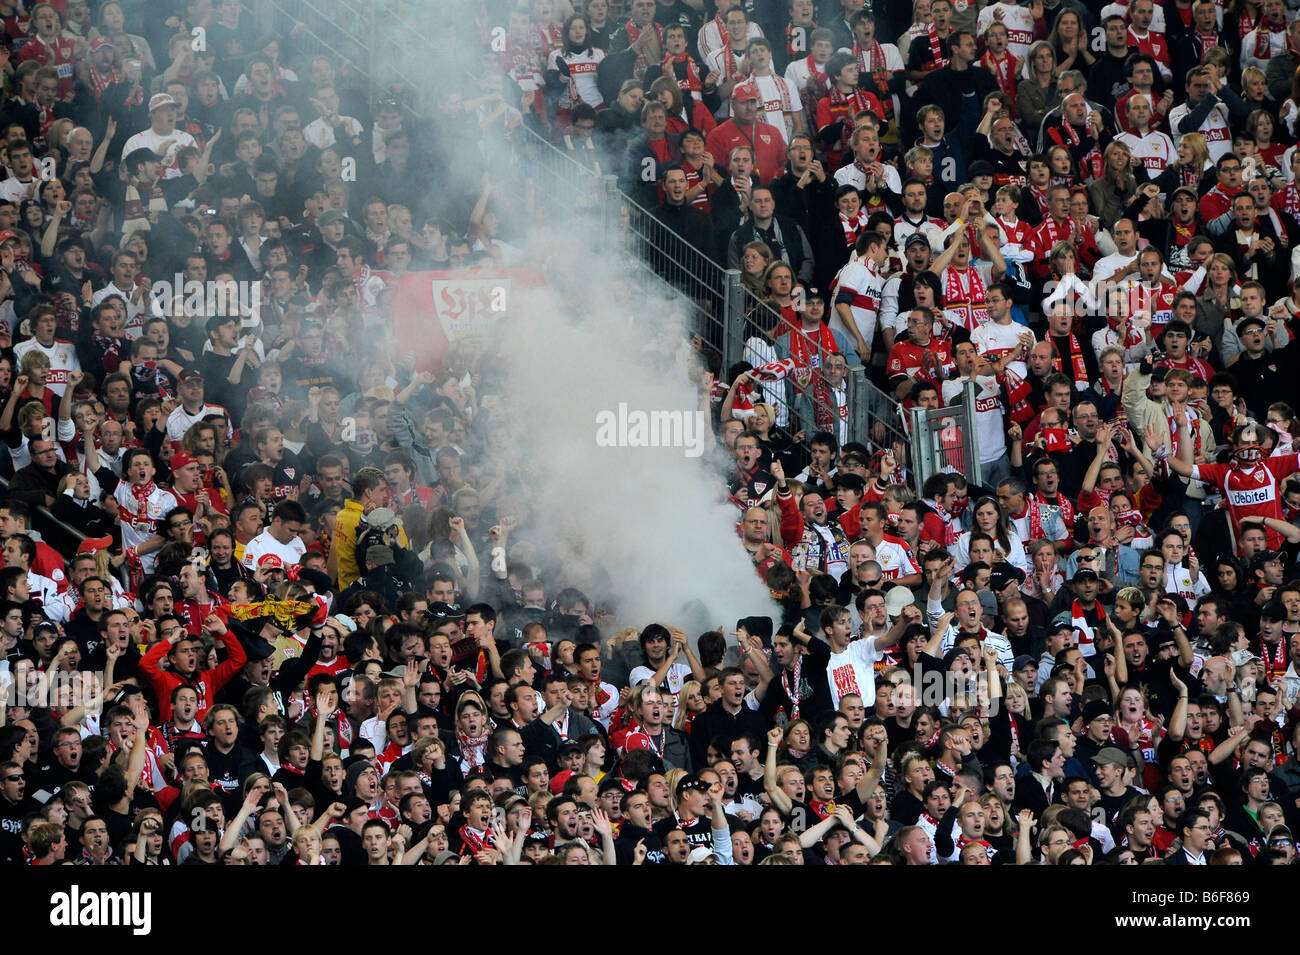 Hooligans igniting fireworks and smoke bombs in a fan block - Stock Image